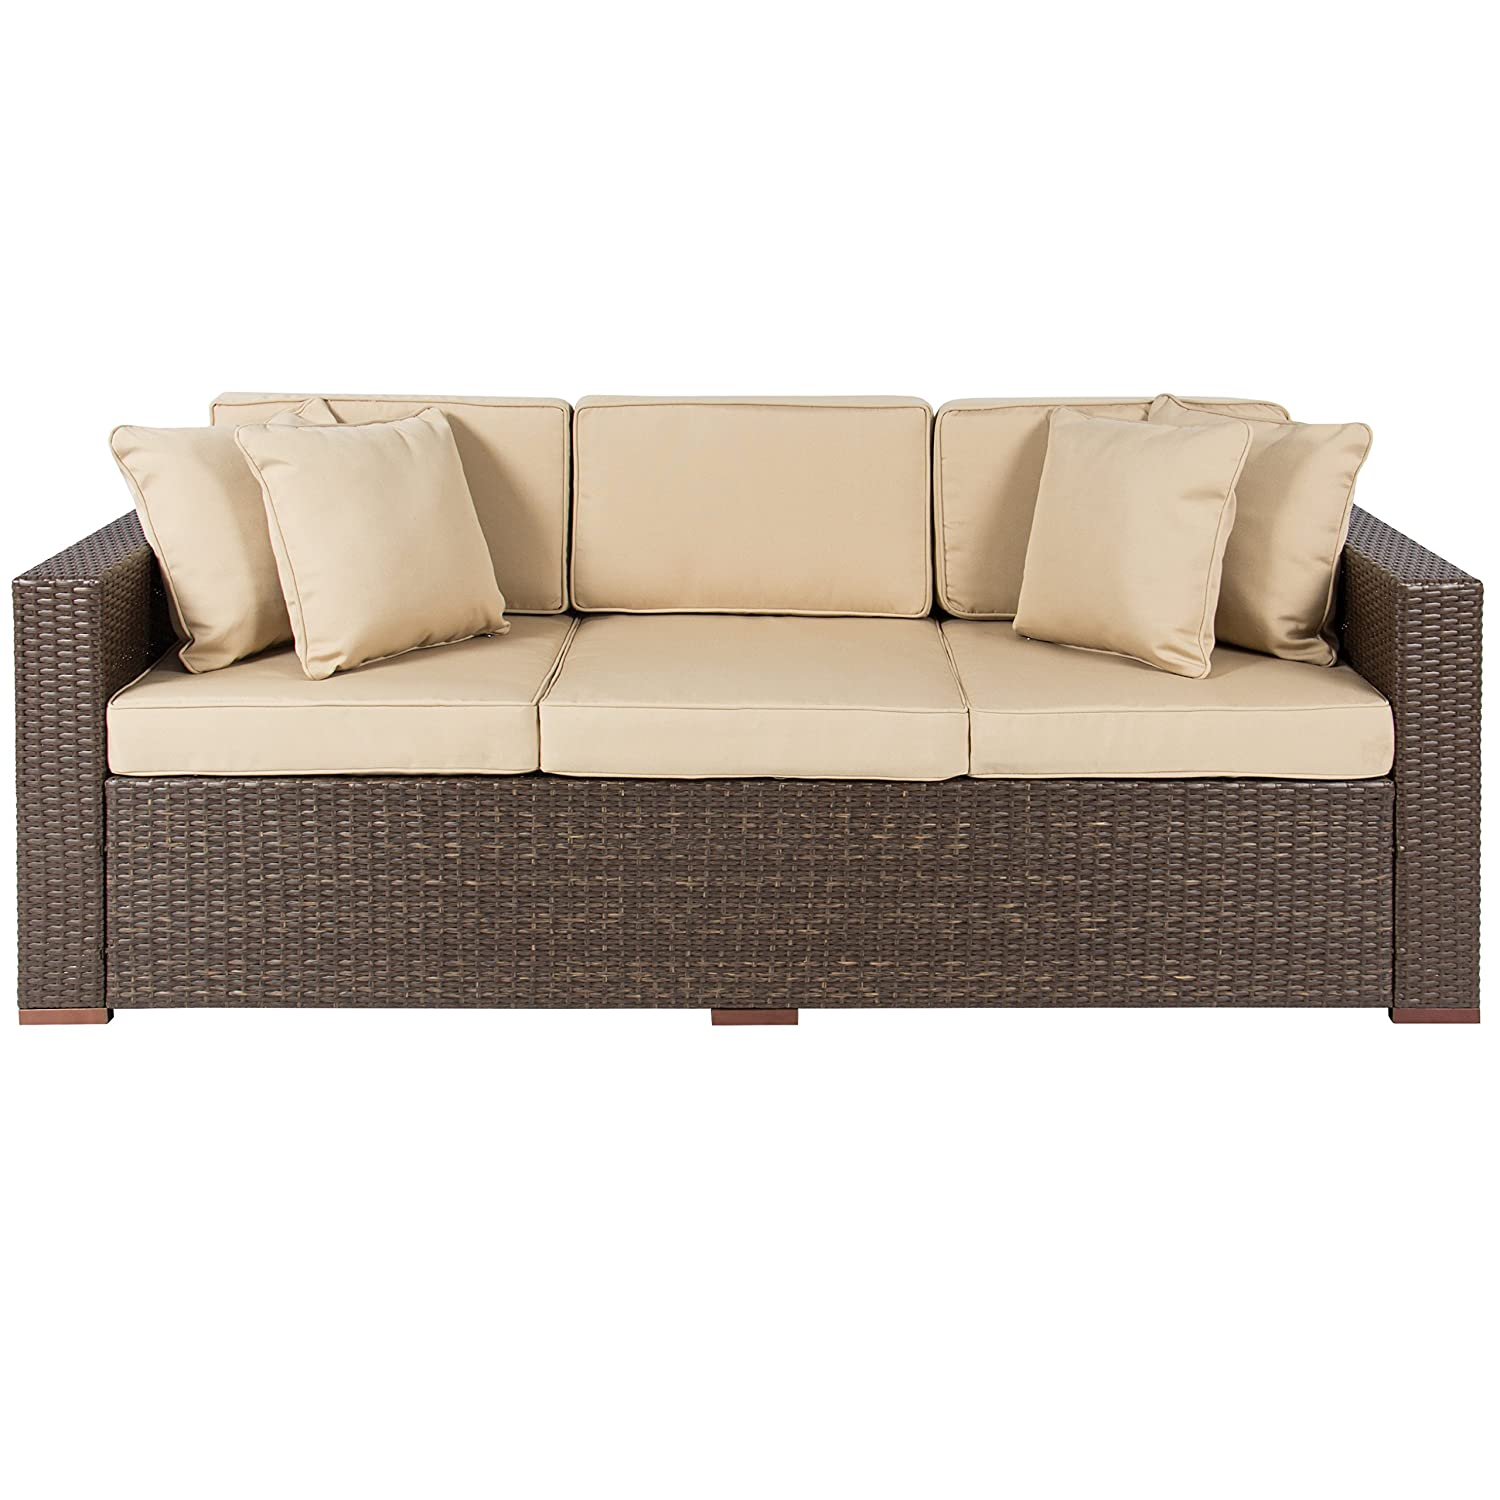 Amazon.com: Best ChoiceProducts Outdoor Wicker Patio Furniture Sofa 3  Seater Luxury Comfort Brown Wicker Couch: Garden U0026 Outdoor Part 56